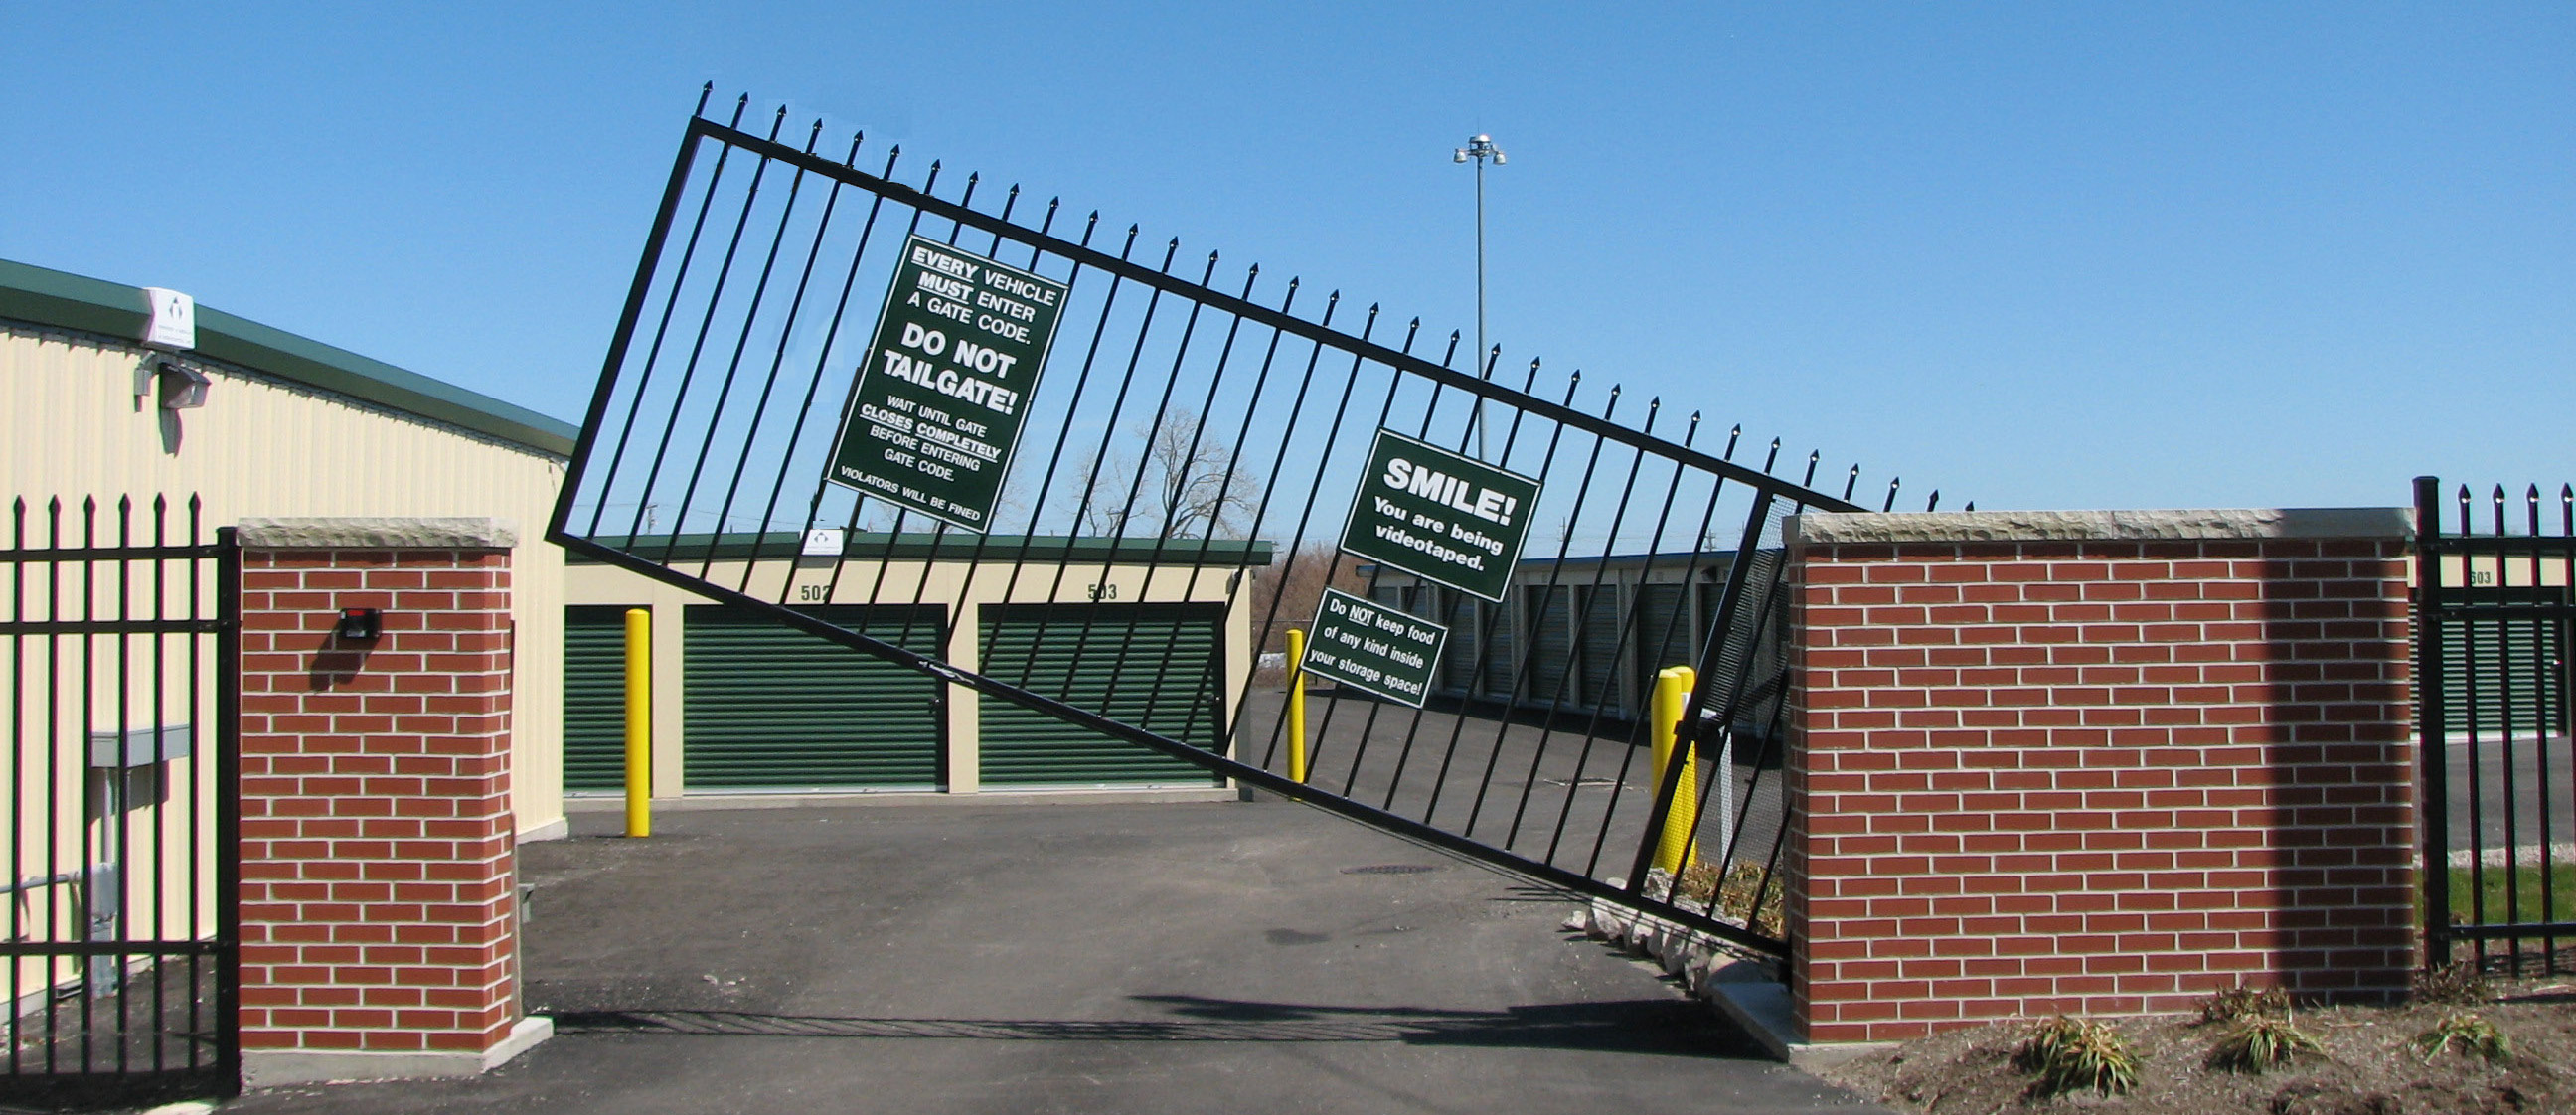 Faq S Autogate Entry Gate Systems